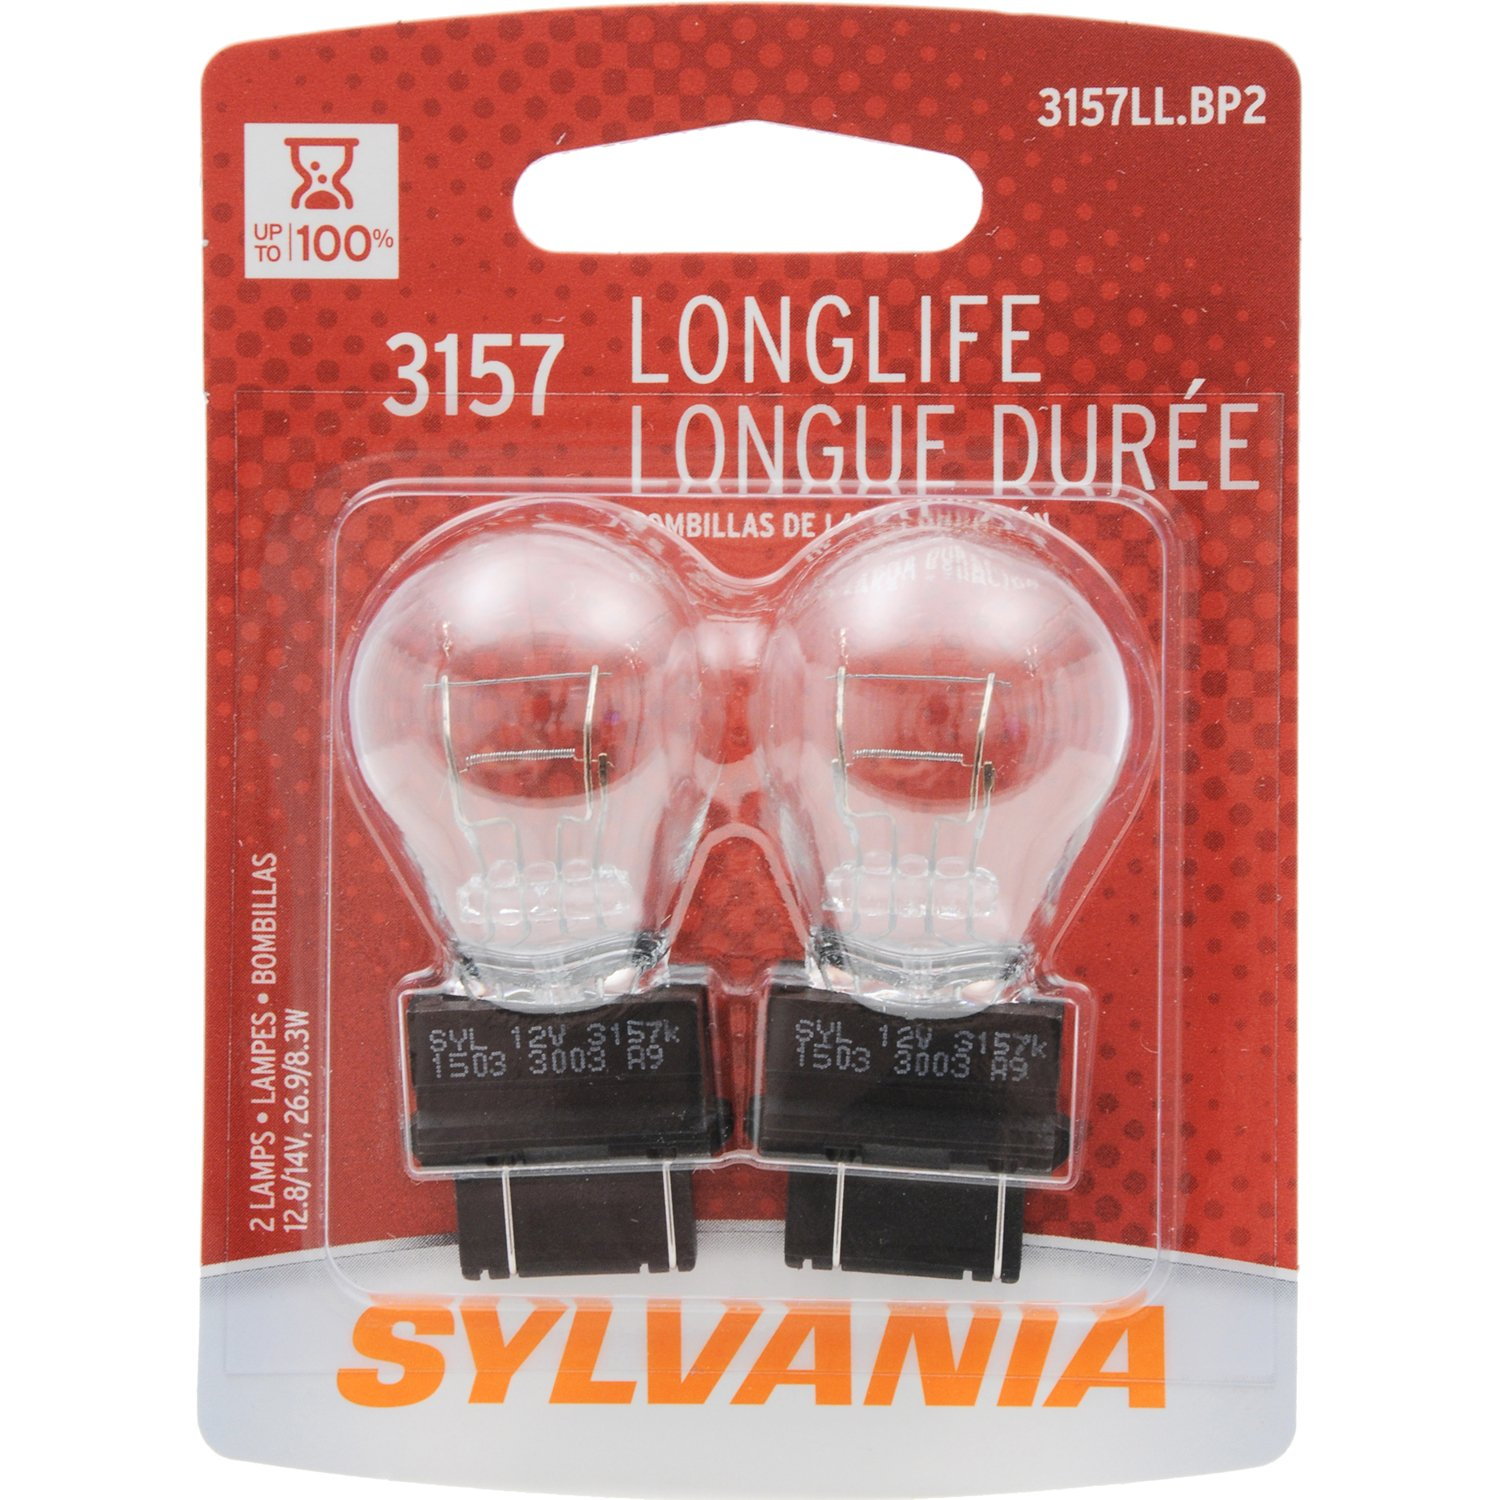 Sylvania 3157 Long Life Miniature Bulb Contains 2 2006 Mustang Gt The Head Light Switch Also Left Front Headlight Bulbs Automotive